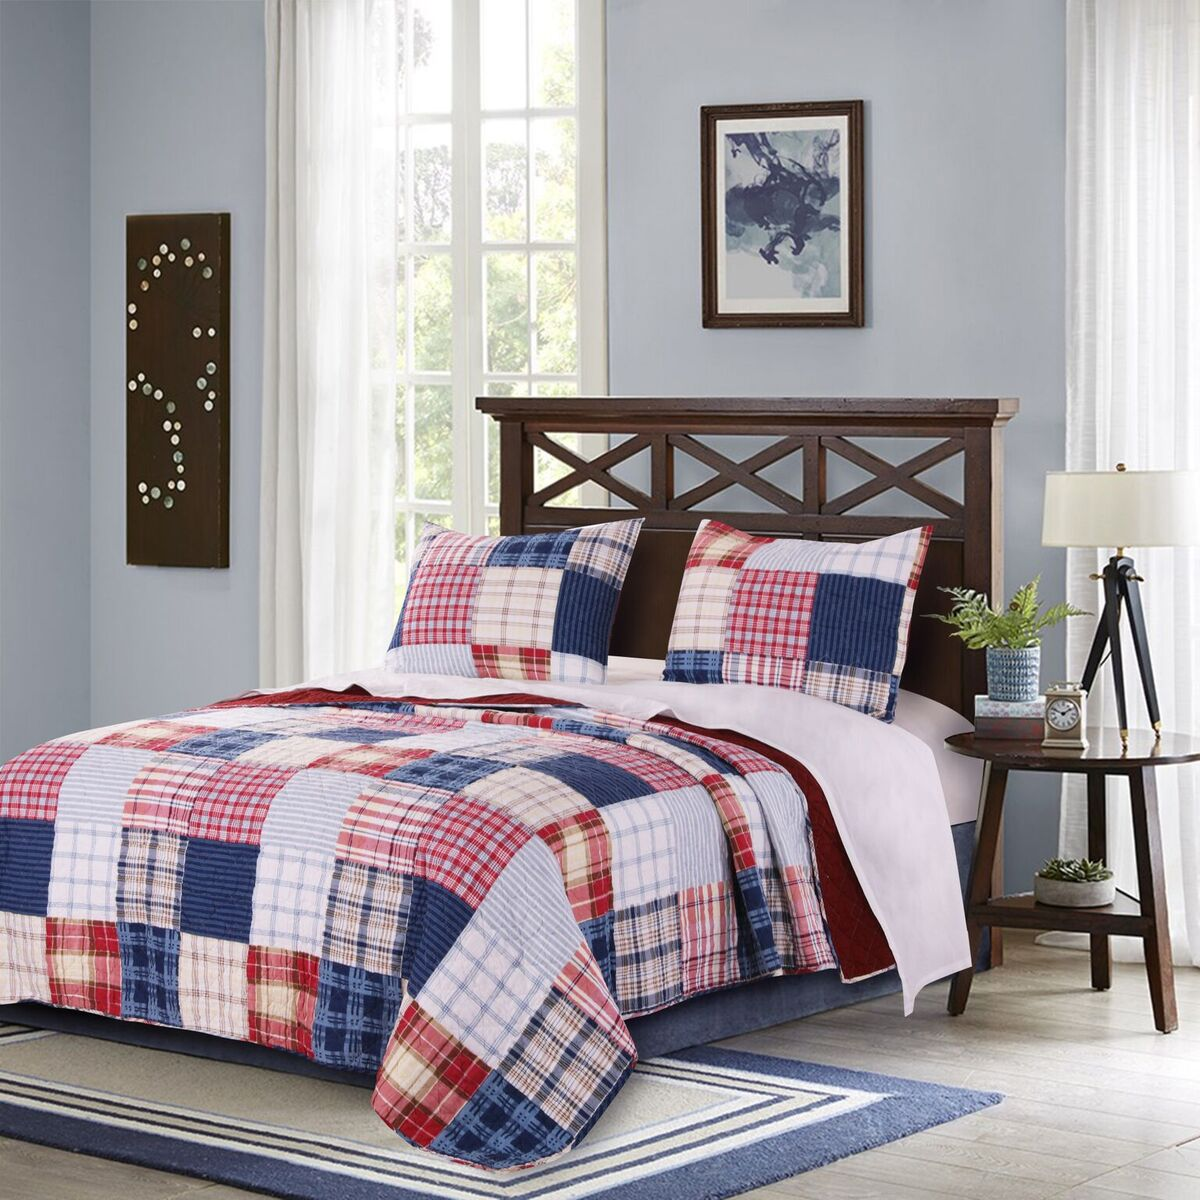 Hampton Multi Quilt Set, 3-Piece King